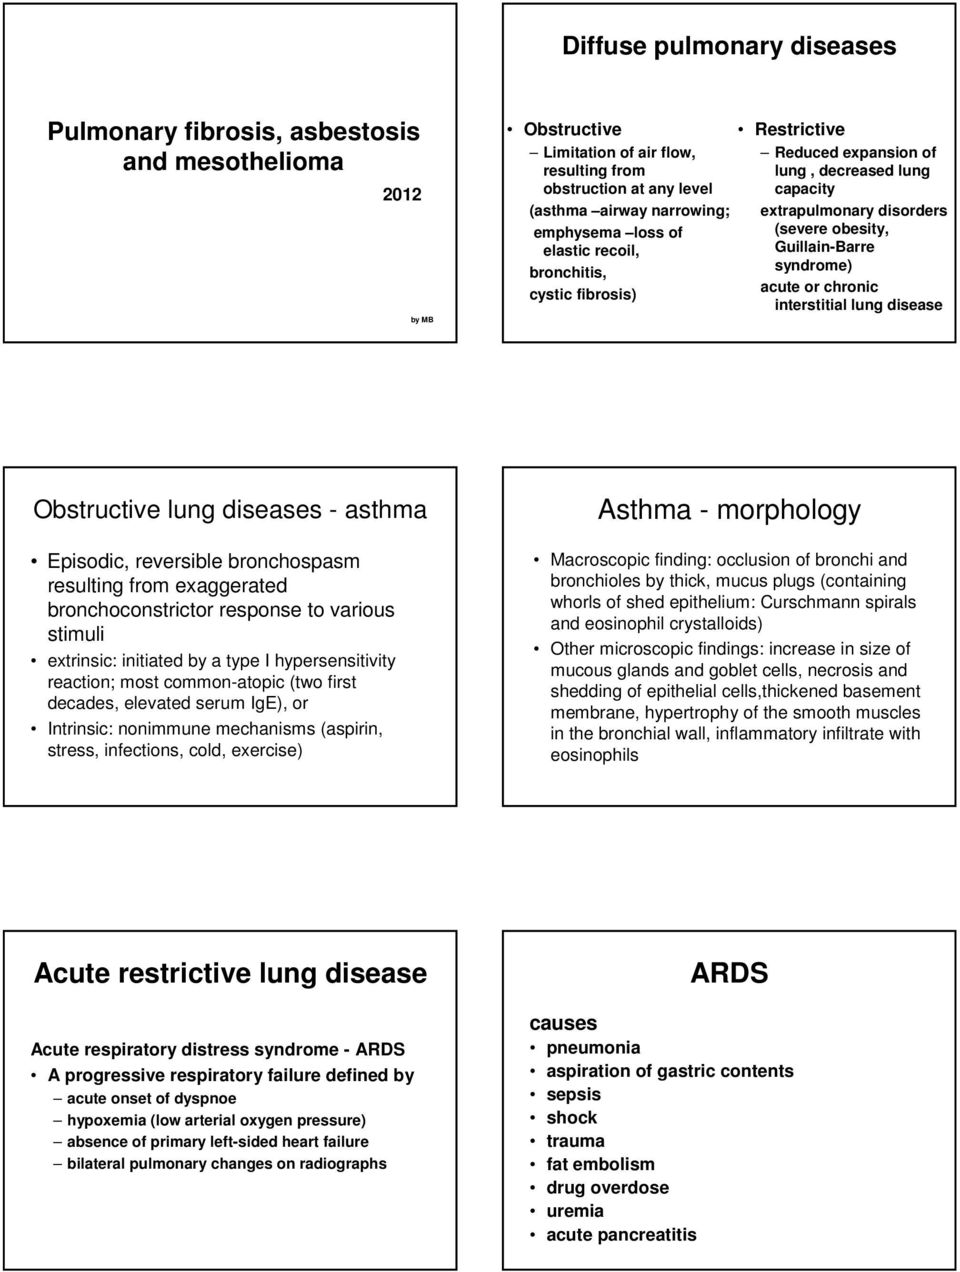 interstitial lung disease Obstructive lung diseases - asthma Episodic, reversible bronchospasm resulting from exaggerated bronchoconstrictor response to various stimuli extrinsic: initiated by a type